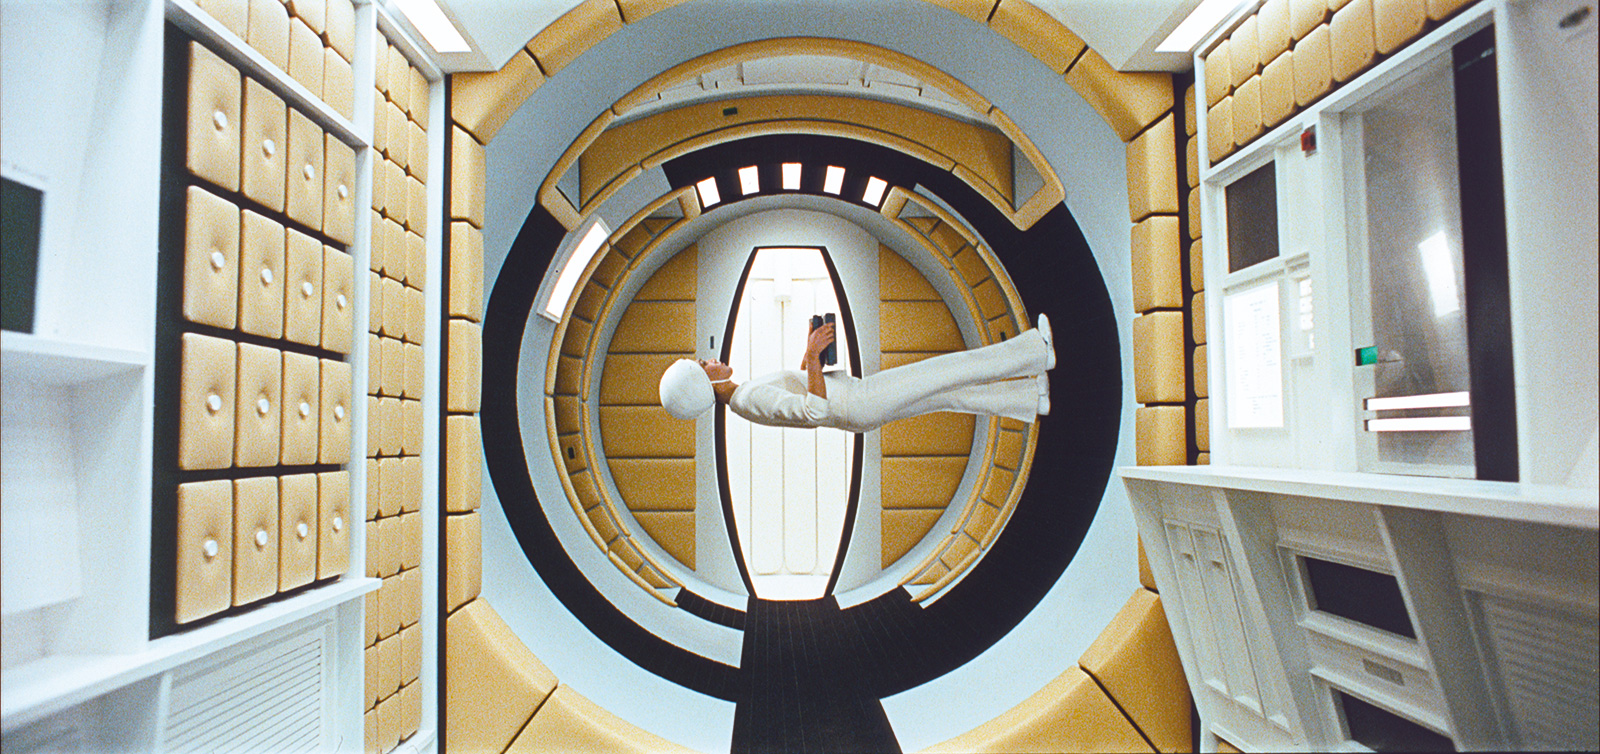 The centrifuge stage in 2001: A Space Odyssey. (c) The Stanley Kubrick Archive